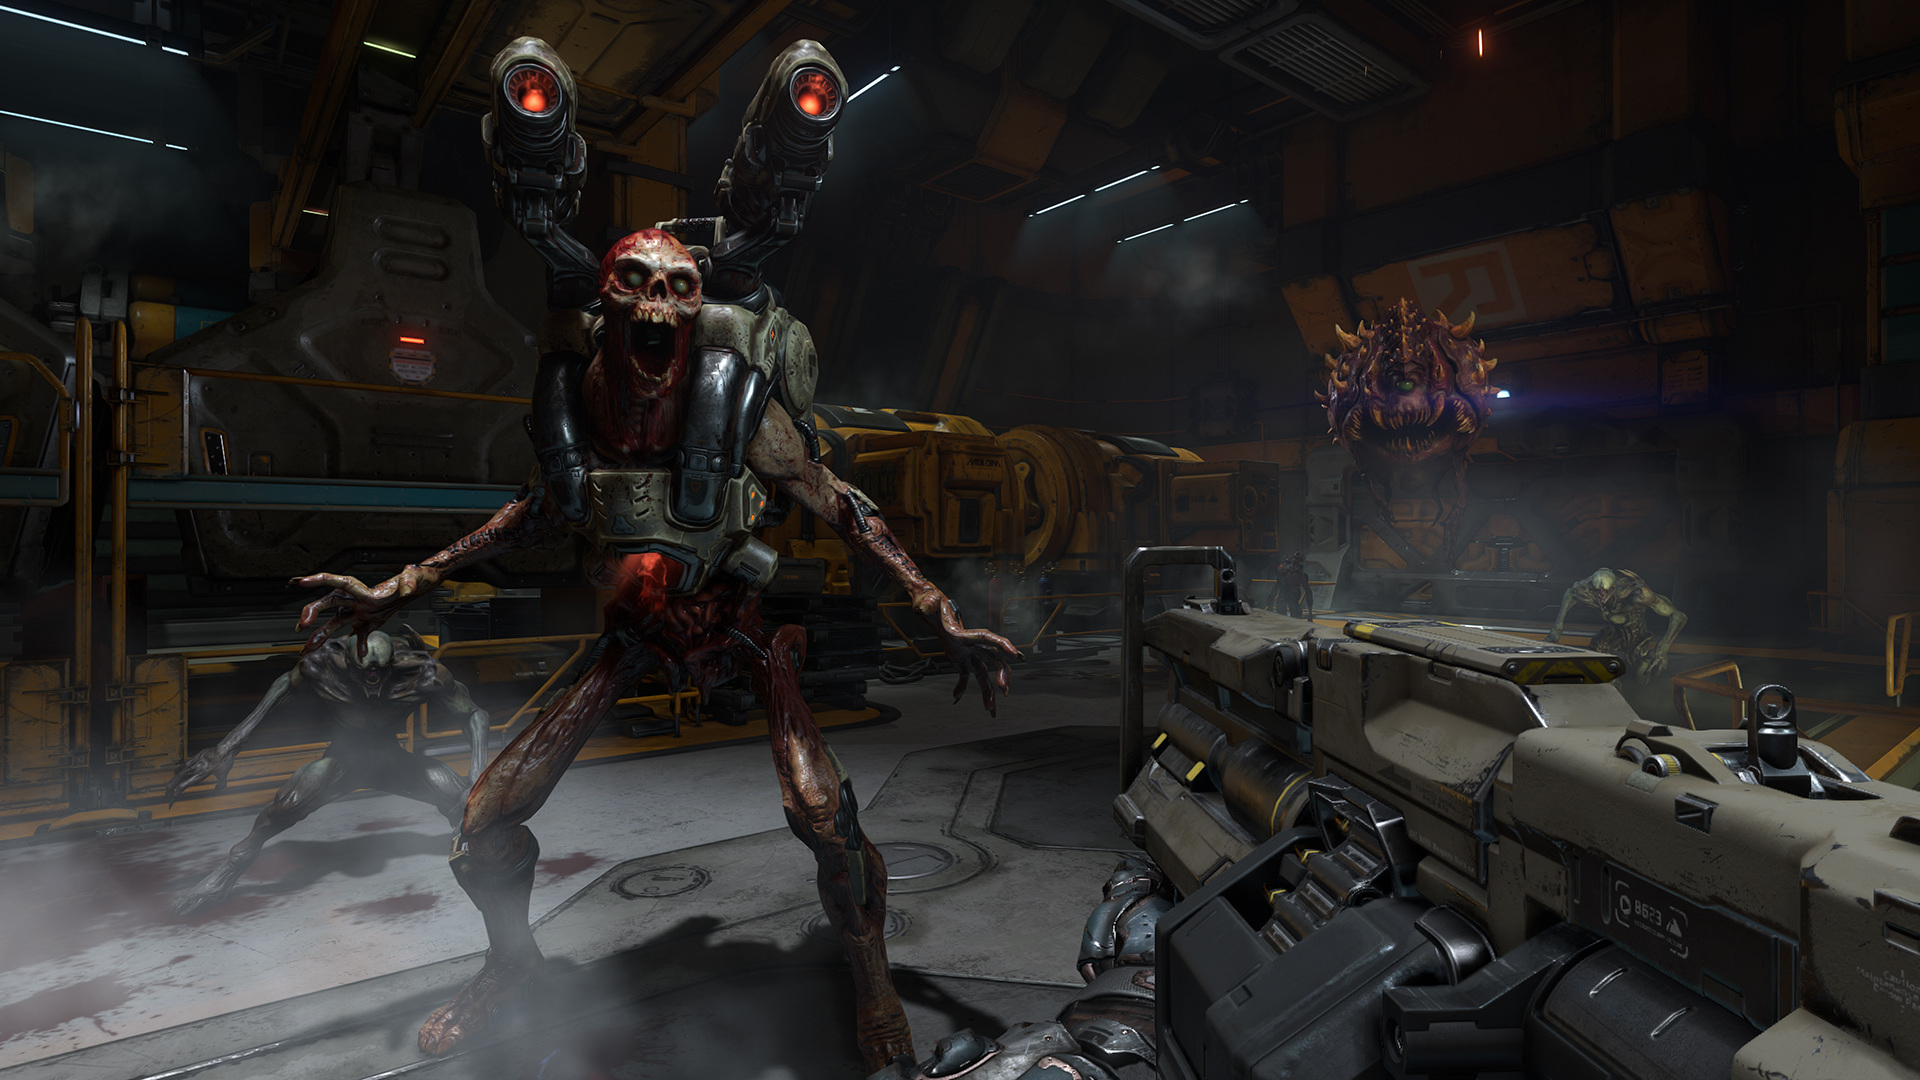 New Screenshots From DOOM - 2015-07-24 12:43:59